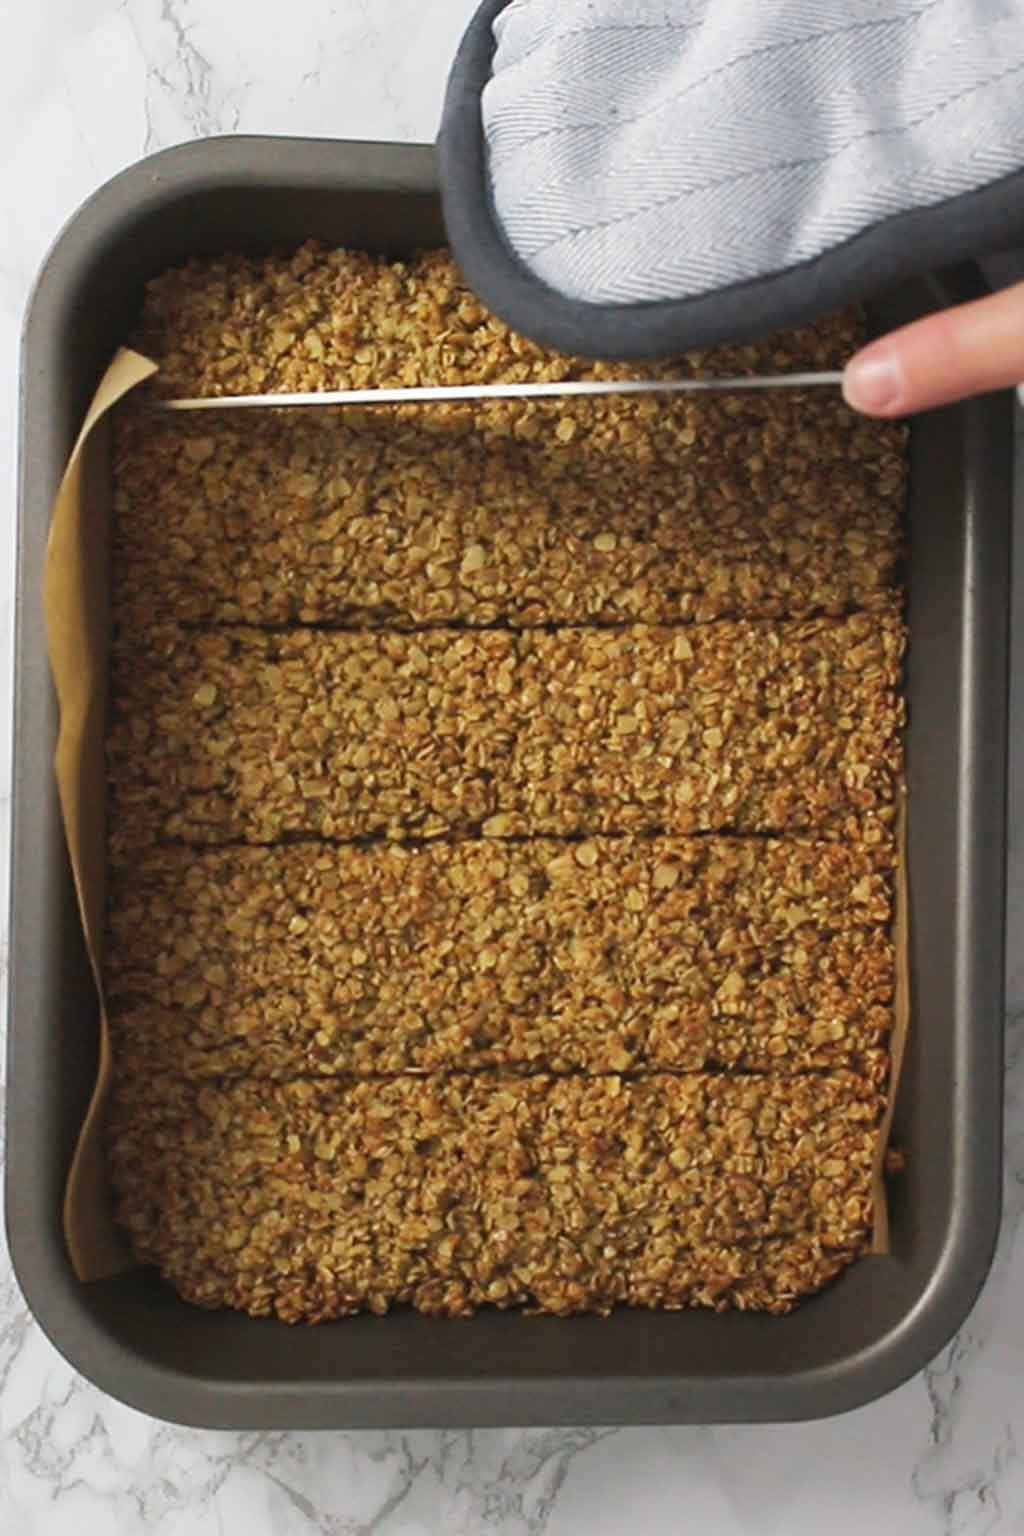 Scoring lines into baked vegan flapjacks